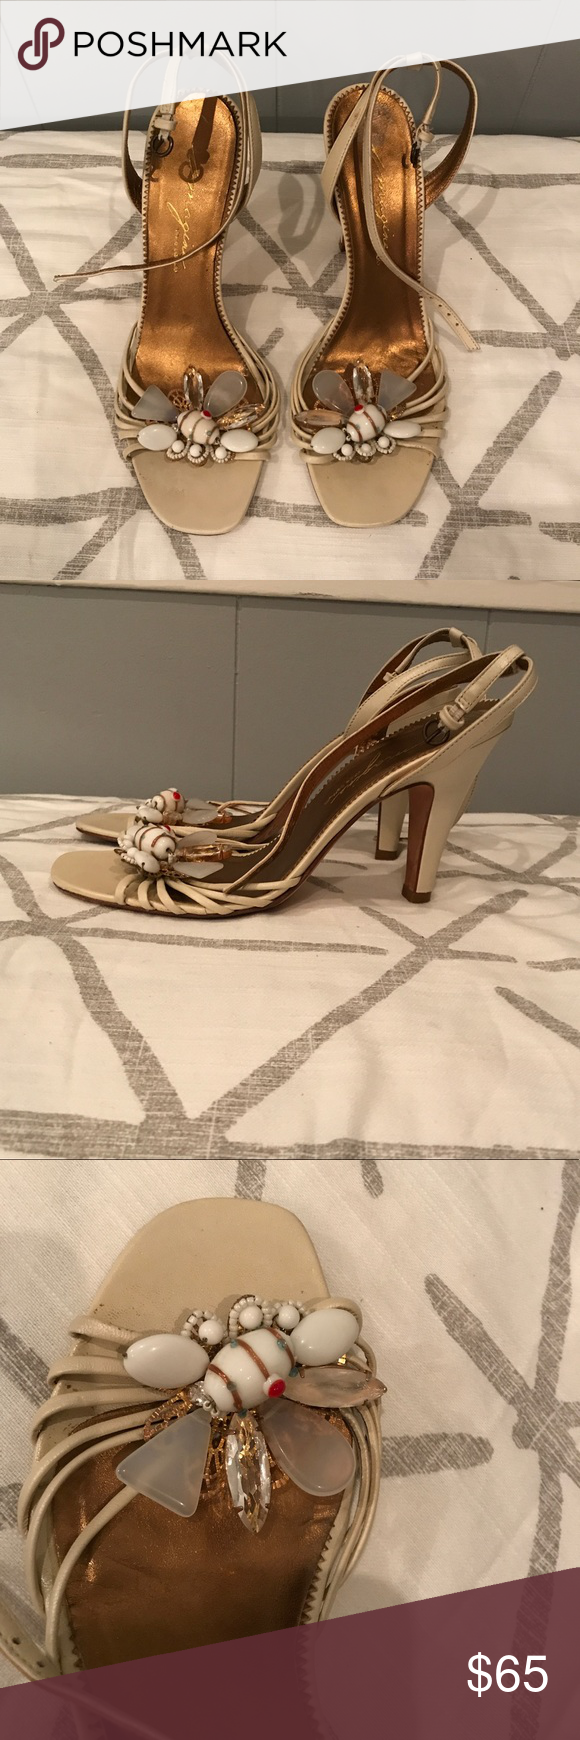 Anthropologie Imagine Shoes These Anthropologie Imagine (by Vince Camuto) shoes are extraordinary because of its beautifully done work and bead detail in the front. In offwhite and gold leather. Some minor wear and scratches on the heels but still in great condition. No Trades. 😊 Anthropologie Shoes Heels